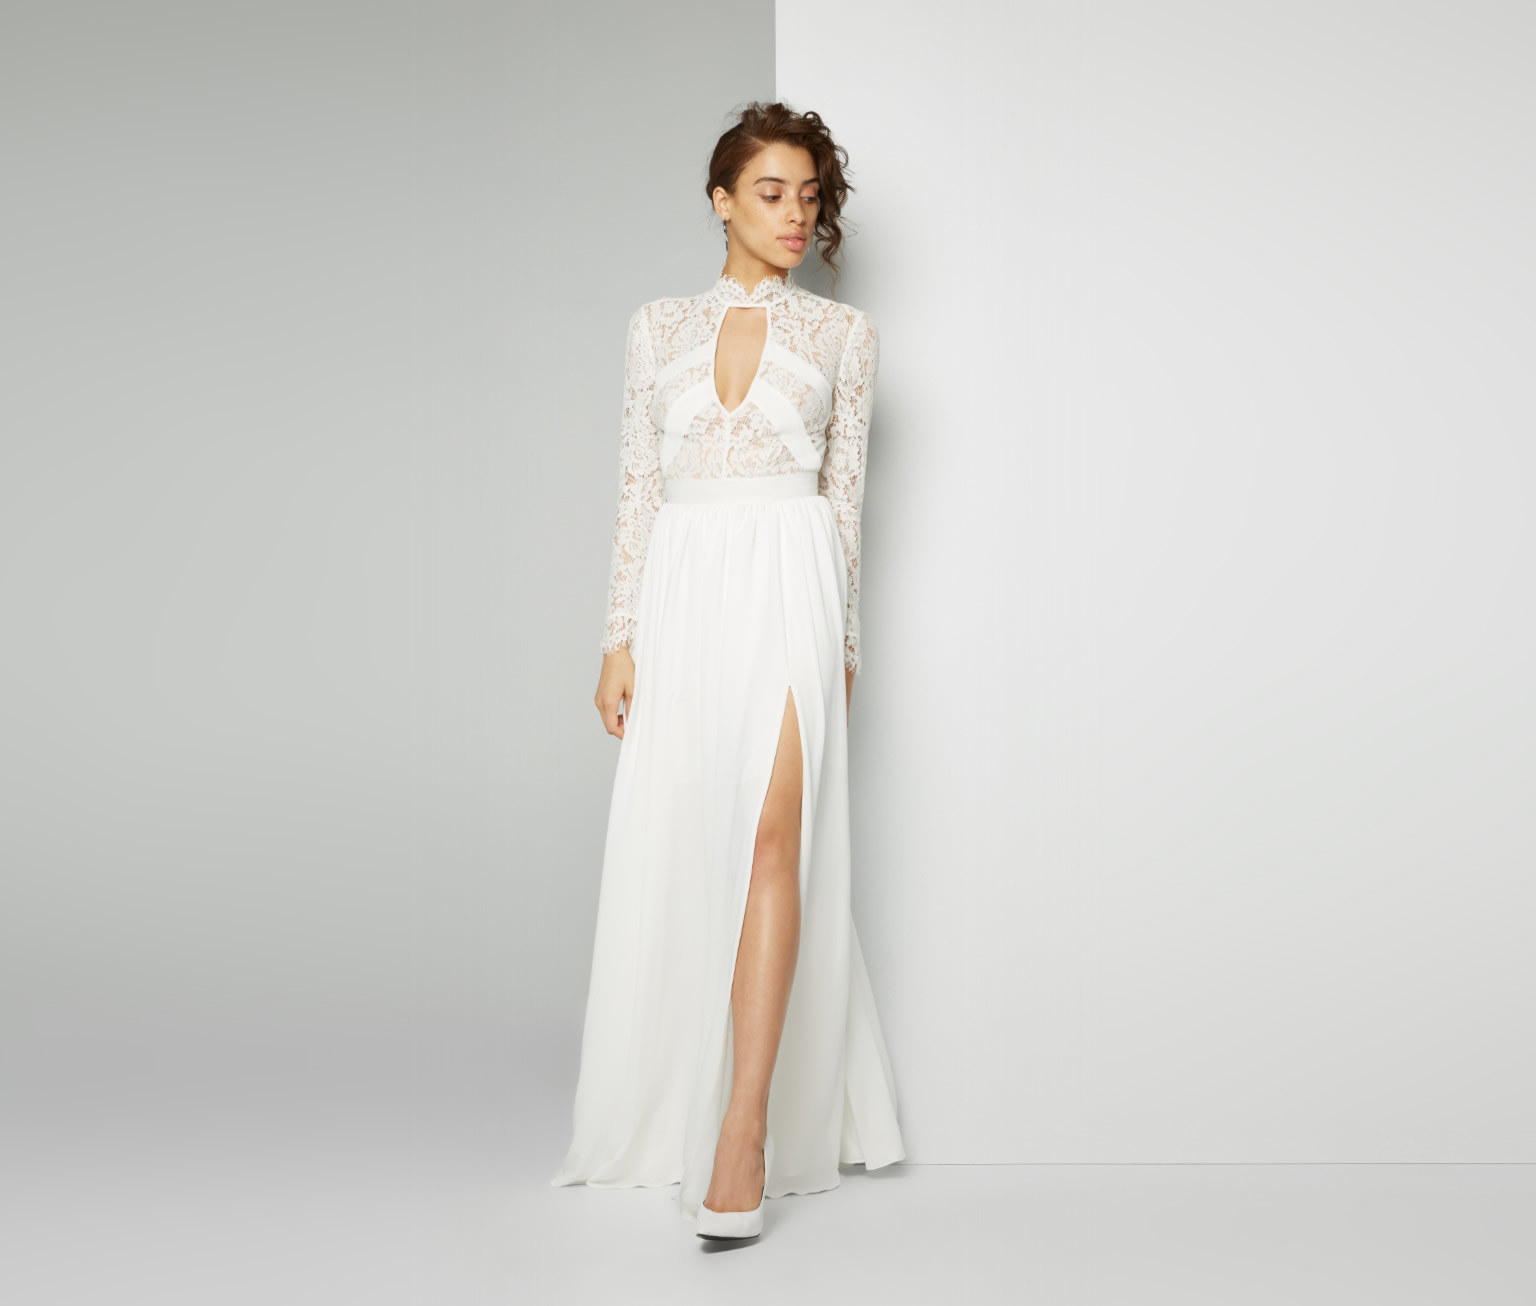 pretty wedding dresses target wedding dresses This Victorian long sleeve lace gown with not so shy keyholes and a split skirt